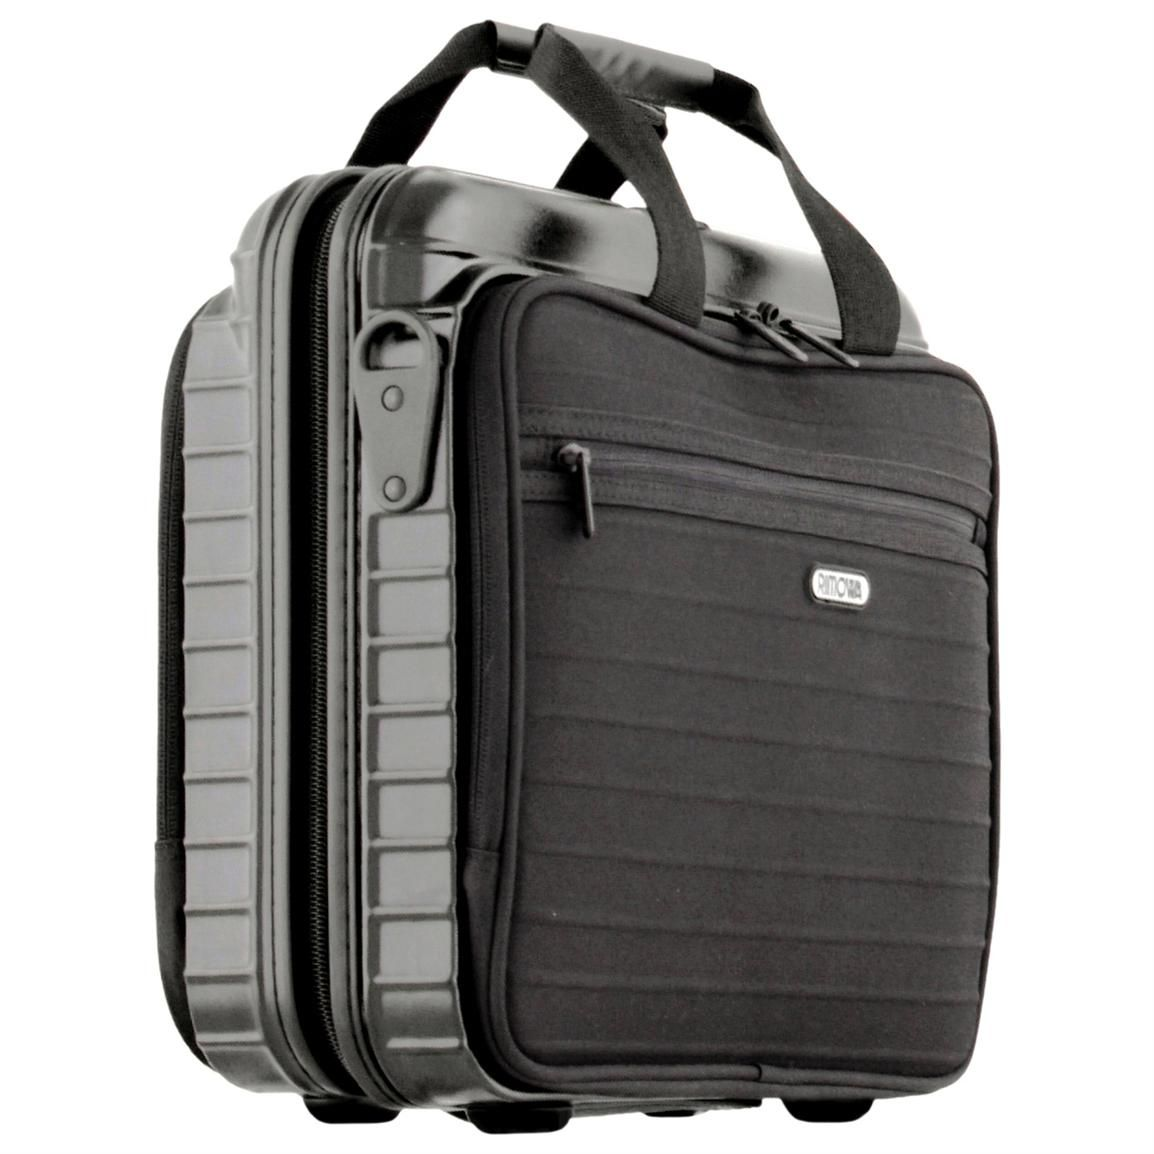 Rimowa Bolero Notebook Case The Organized Solution For Your